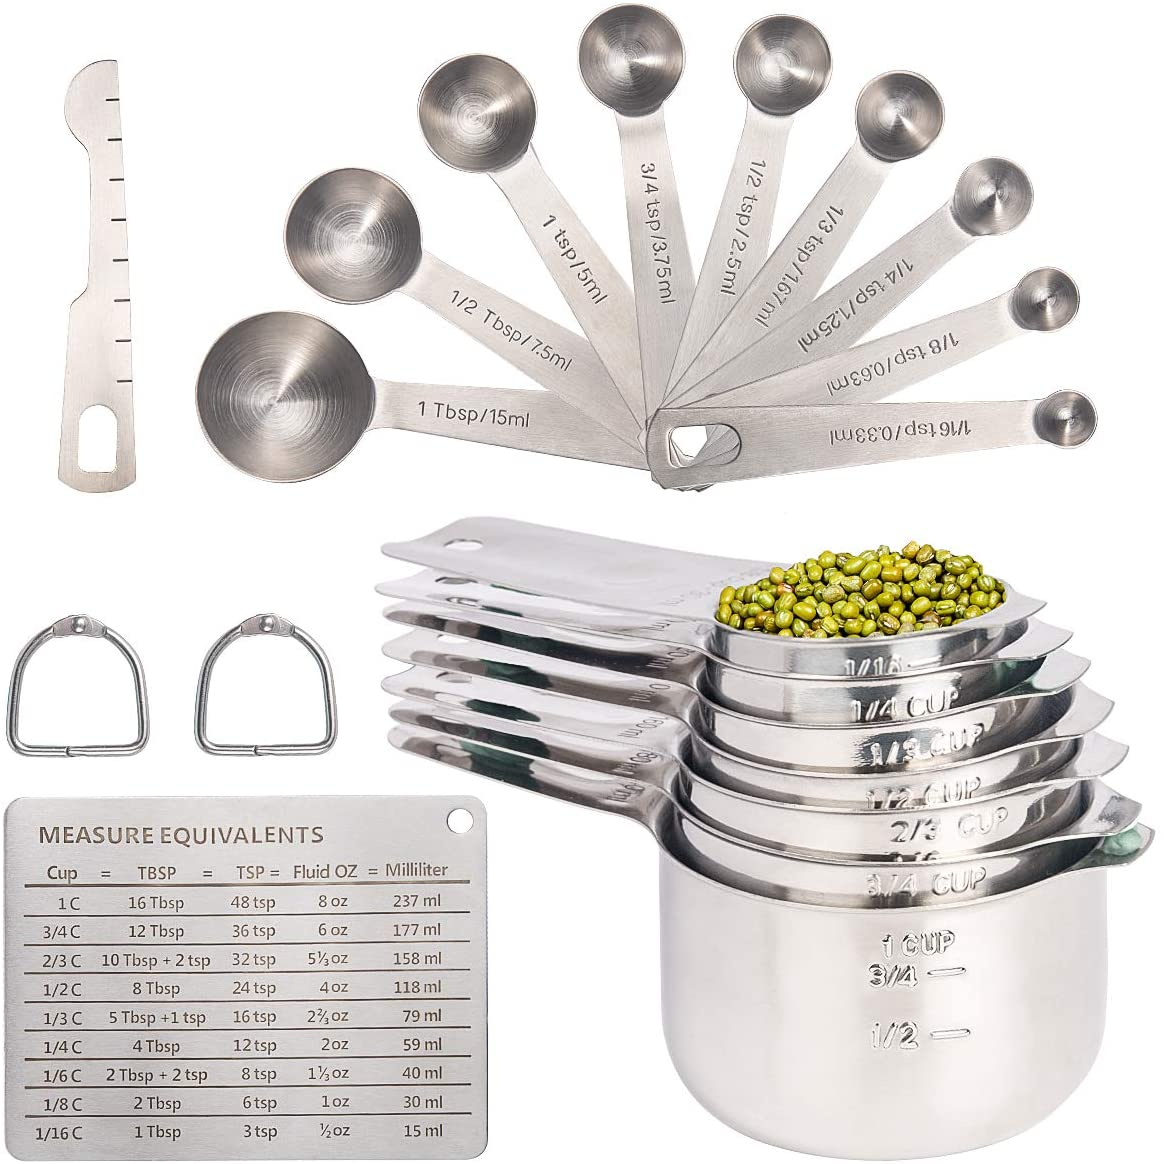 20PCS Measuring Cups and Measuring Spoons Set, Food-Grade Stainless Steel Measure Cup Set for Cooking Baking Measurement, Including 7 Cups, 9 Spoons, Level, Magnetic Chart, Stackable Measuring Set